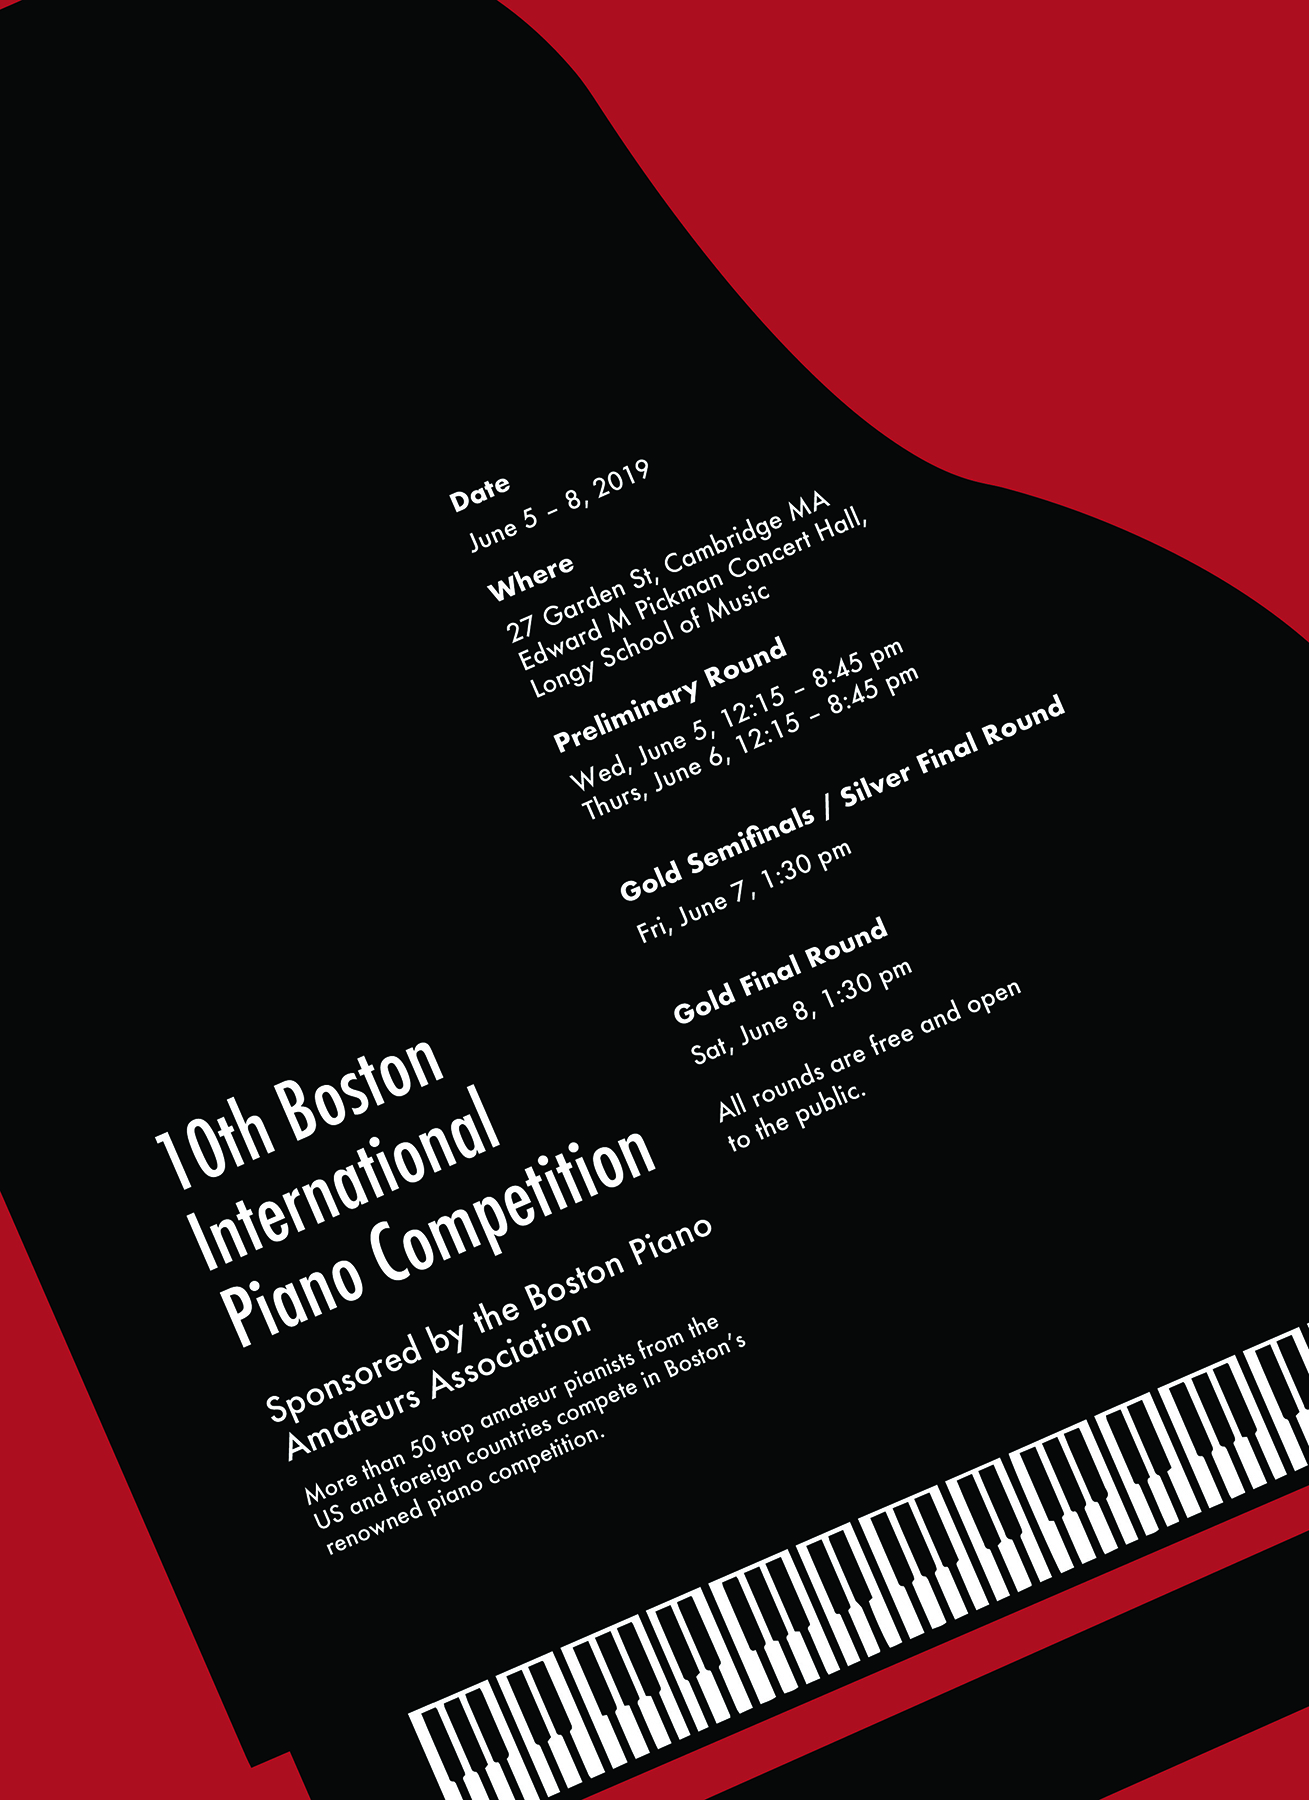 10th Boston International Piano Competition – McGrath PR